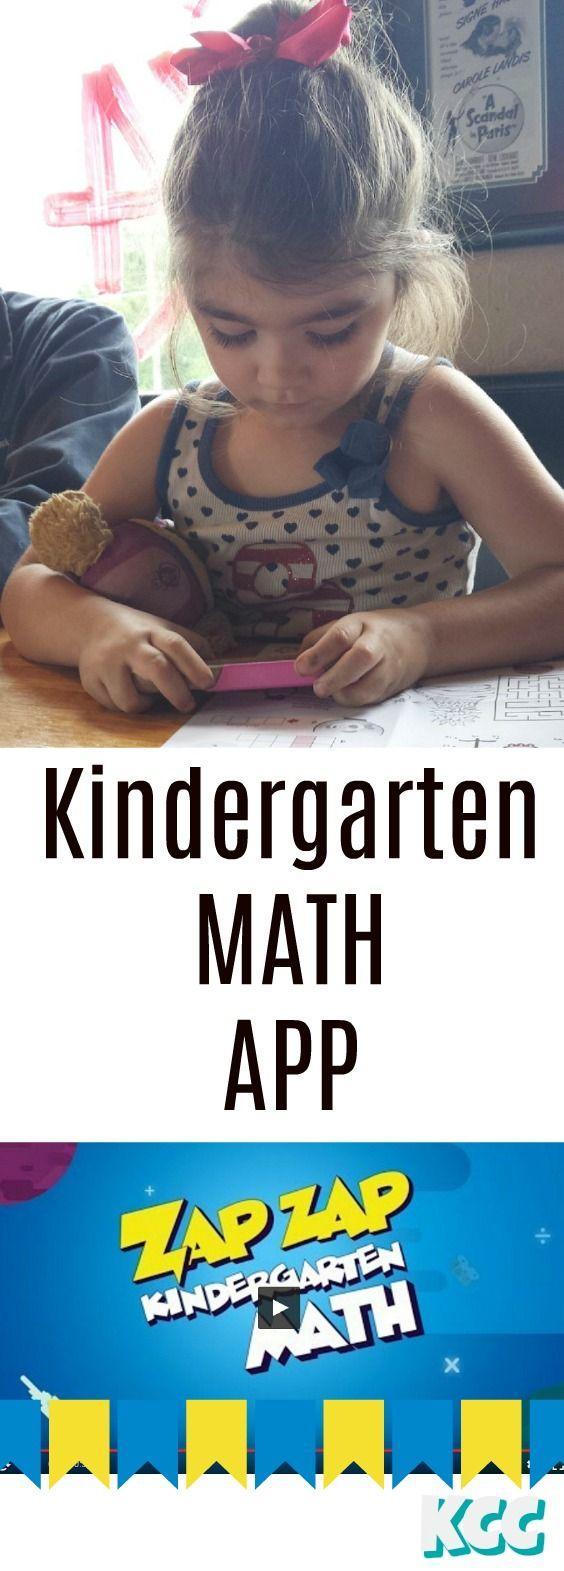 Kids Creative Chaos Blog on Saint Patrick 39 S Day Kindergarten Math Worksheets